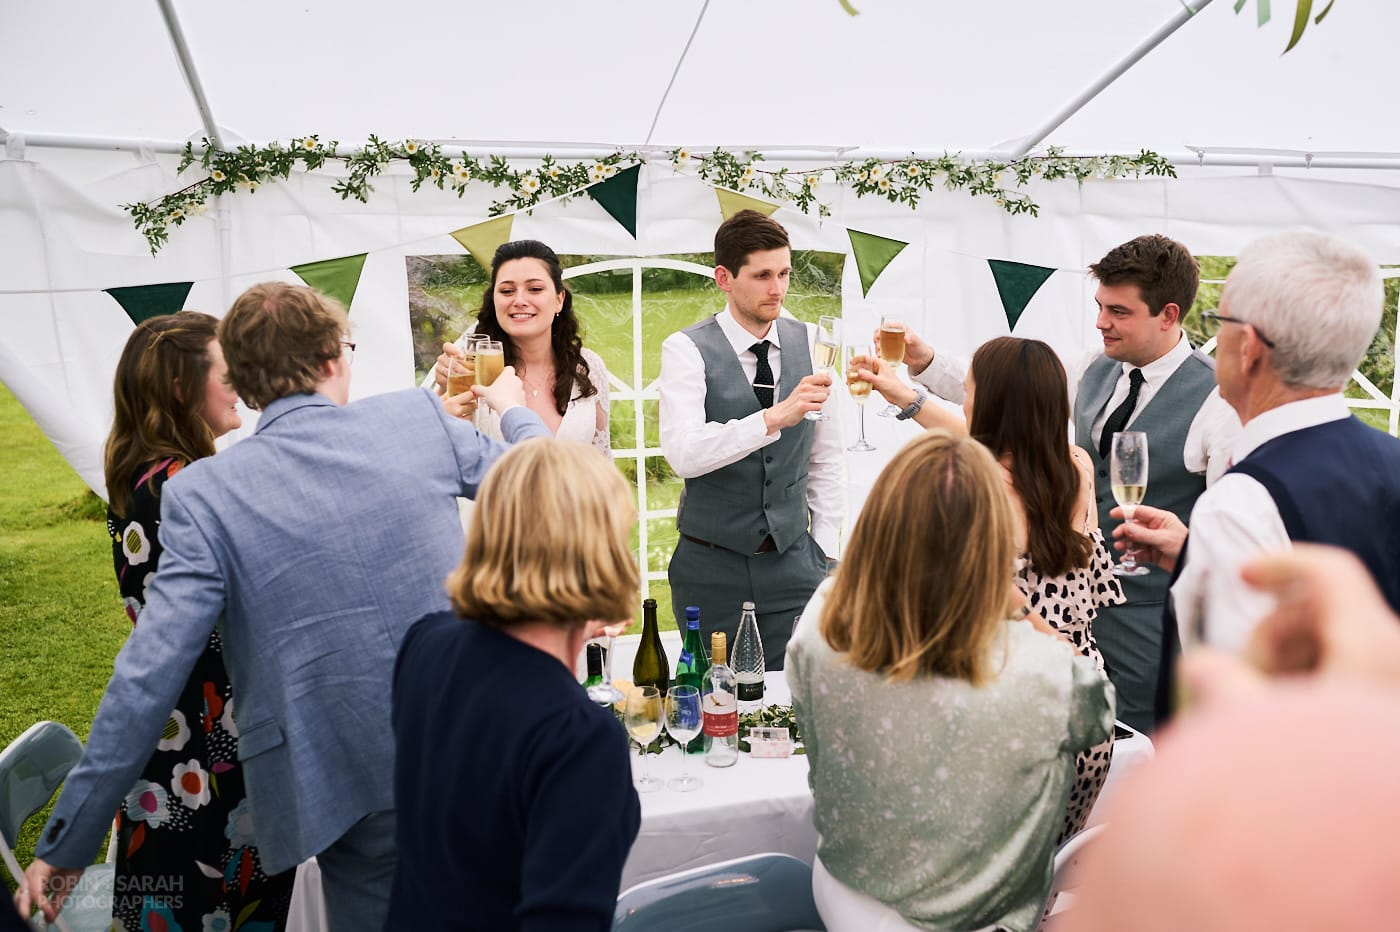 Bride and groom toast during speeches at small garden wedding